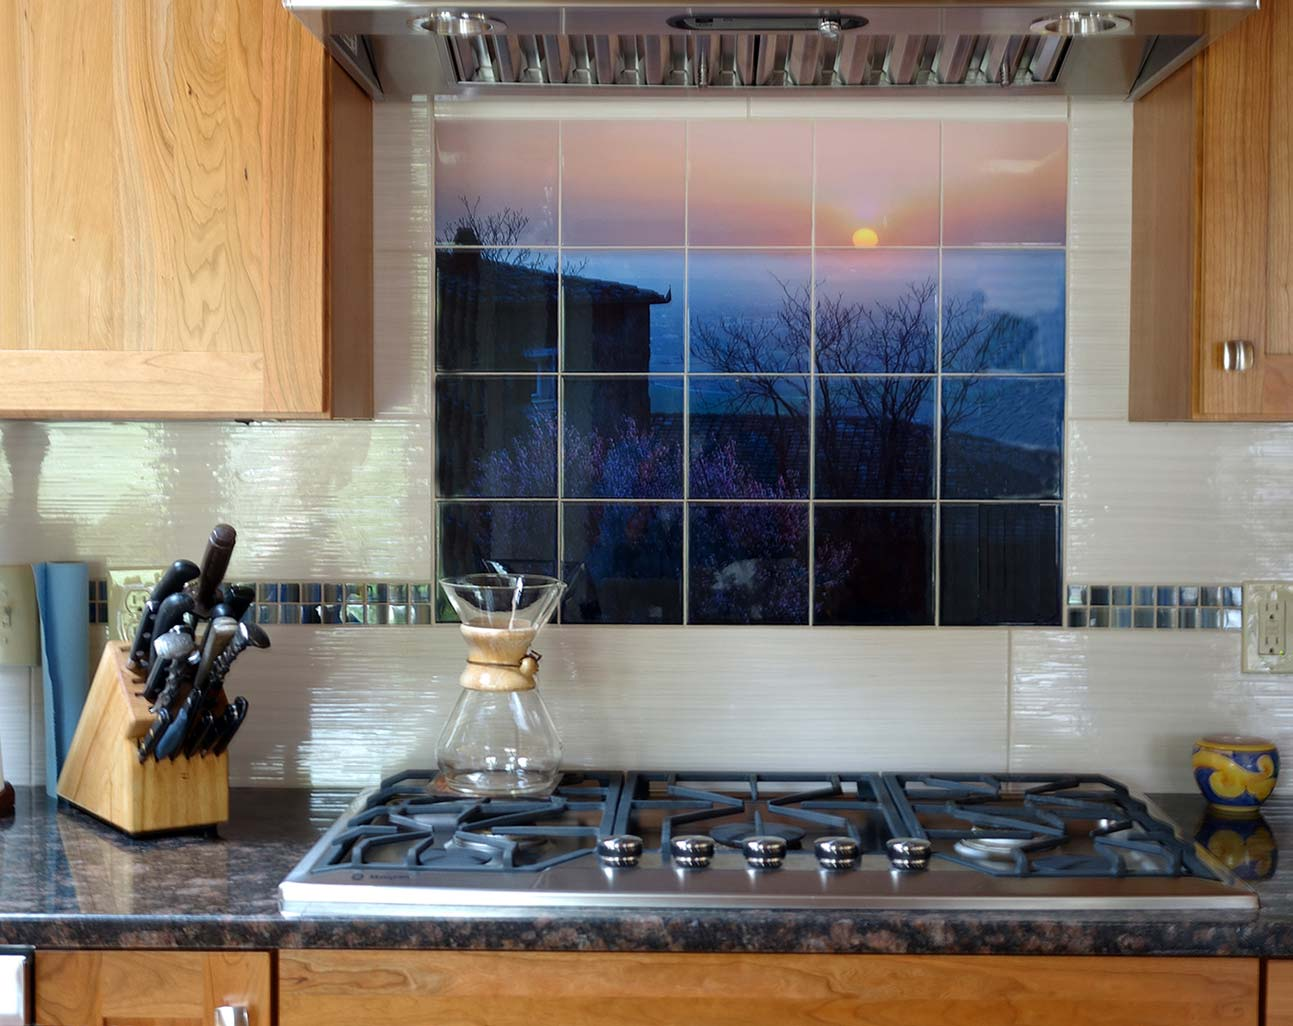 Kitchen-Backsplash-Italian-Scene